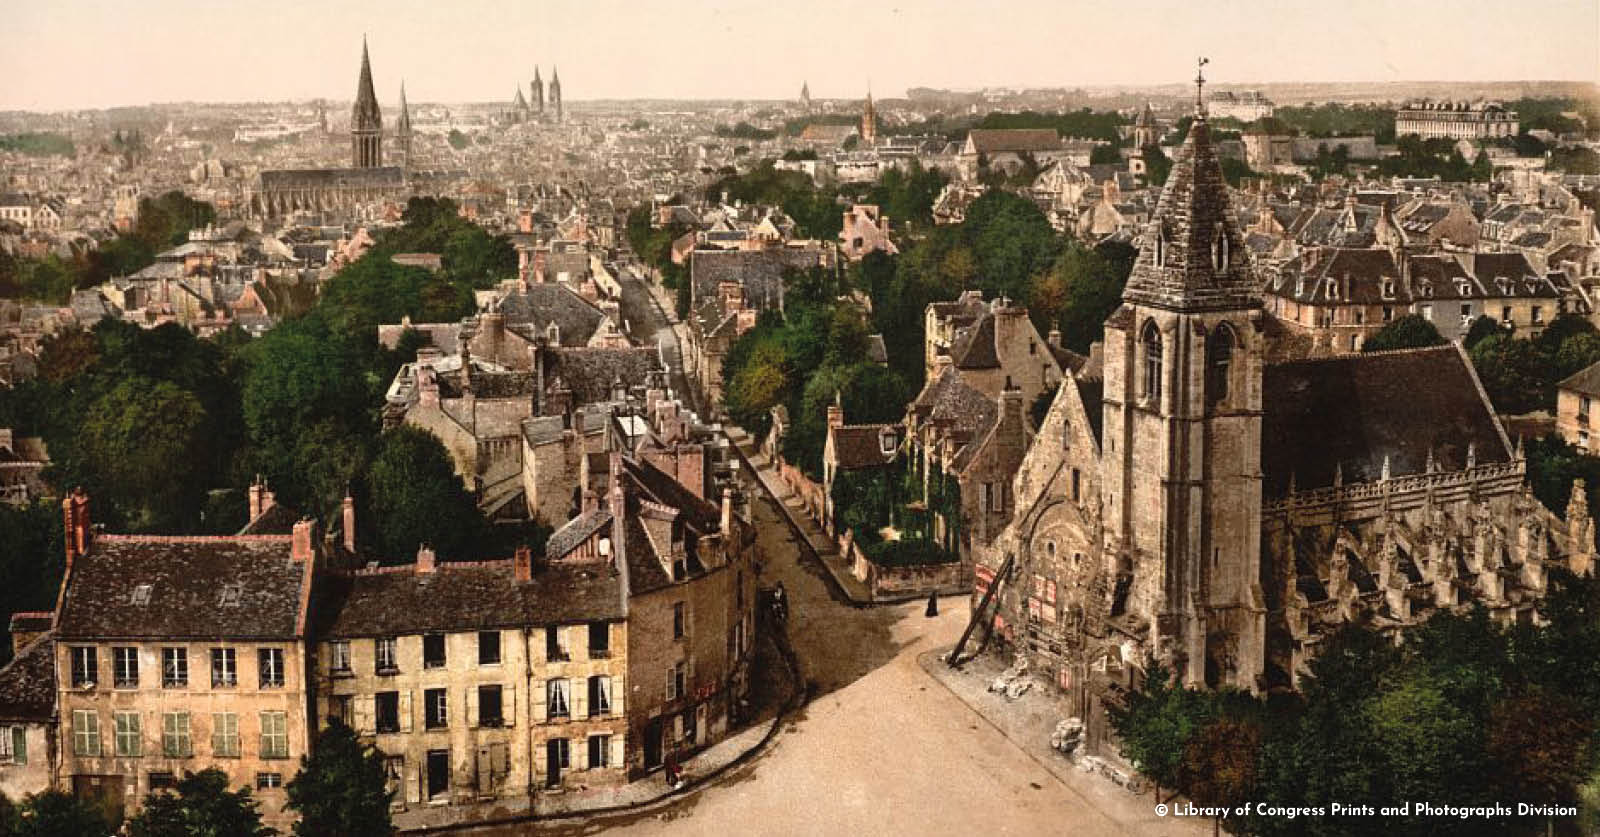 Caen image colorisée_©Library of Congress Prints and Photographs Division_L'Happy mensuel